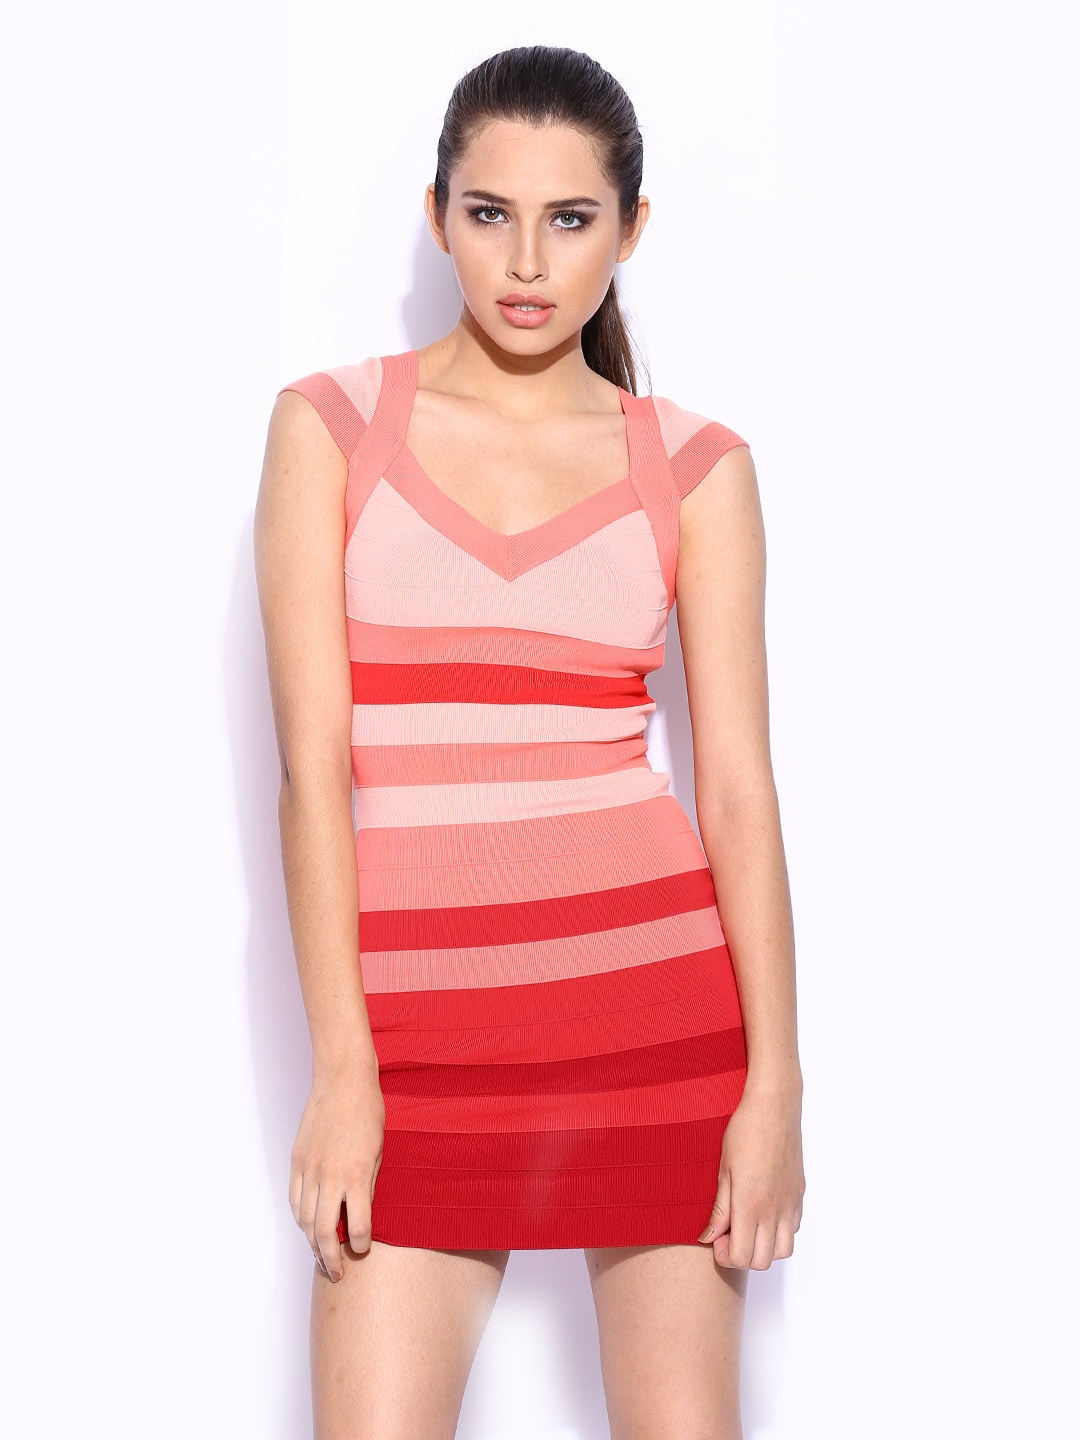 Guess Dresses Buy Guess Dresses Online in India